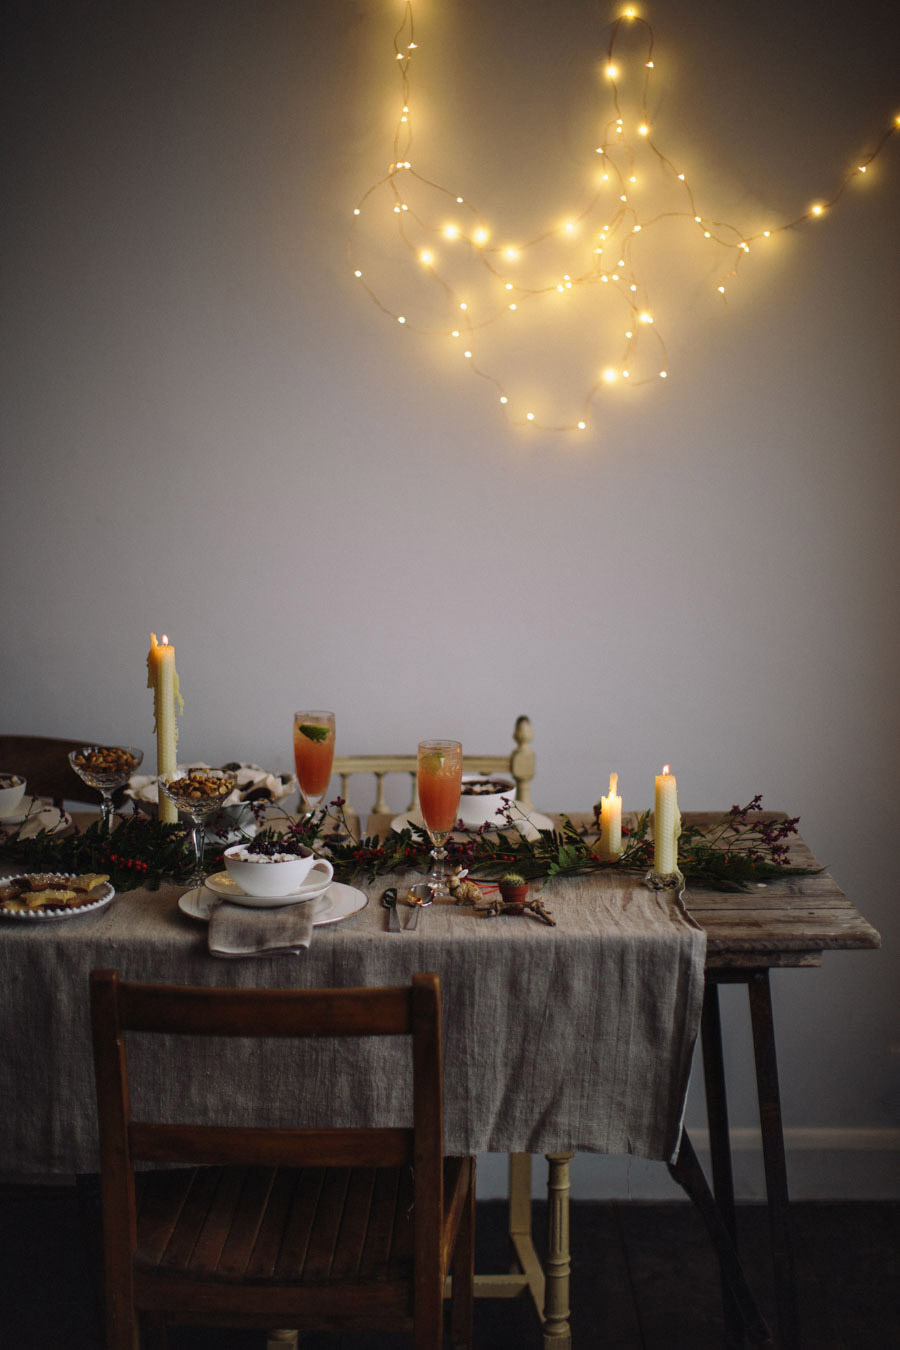 Rustic Christmas styling